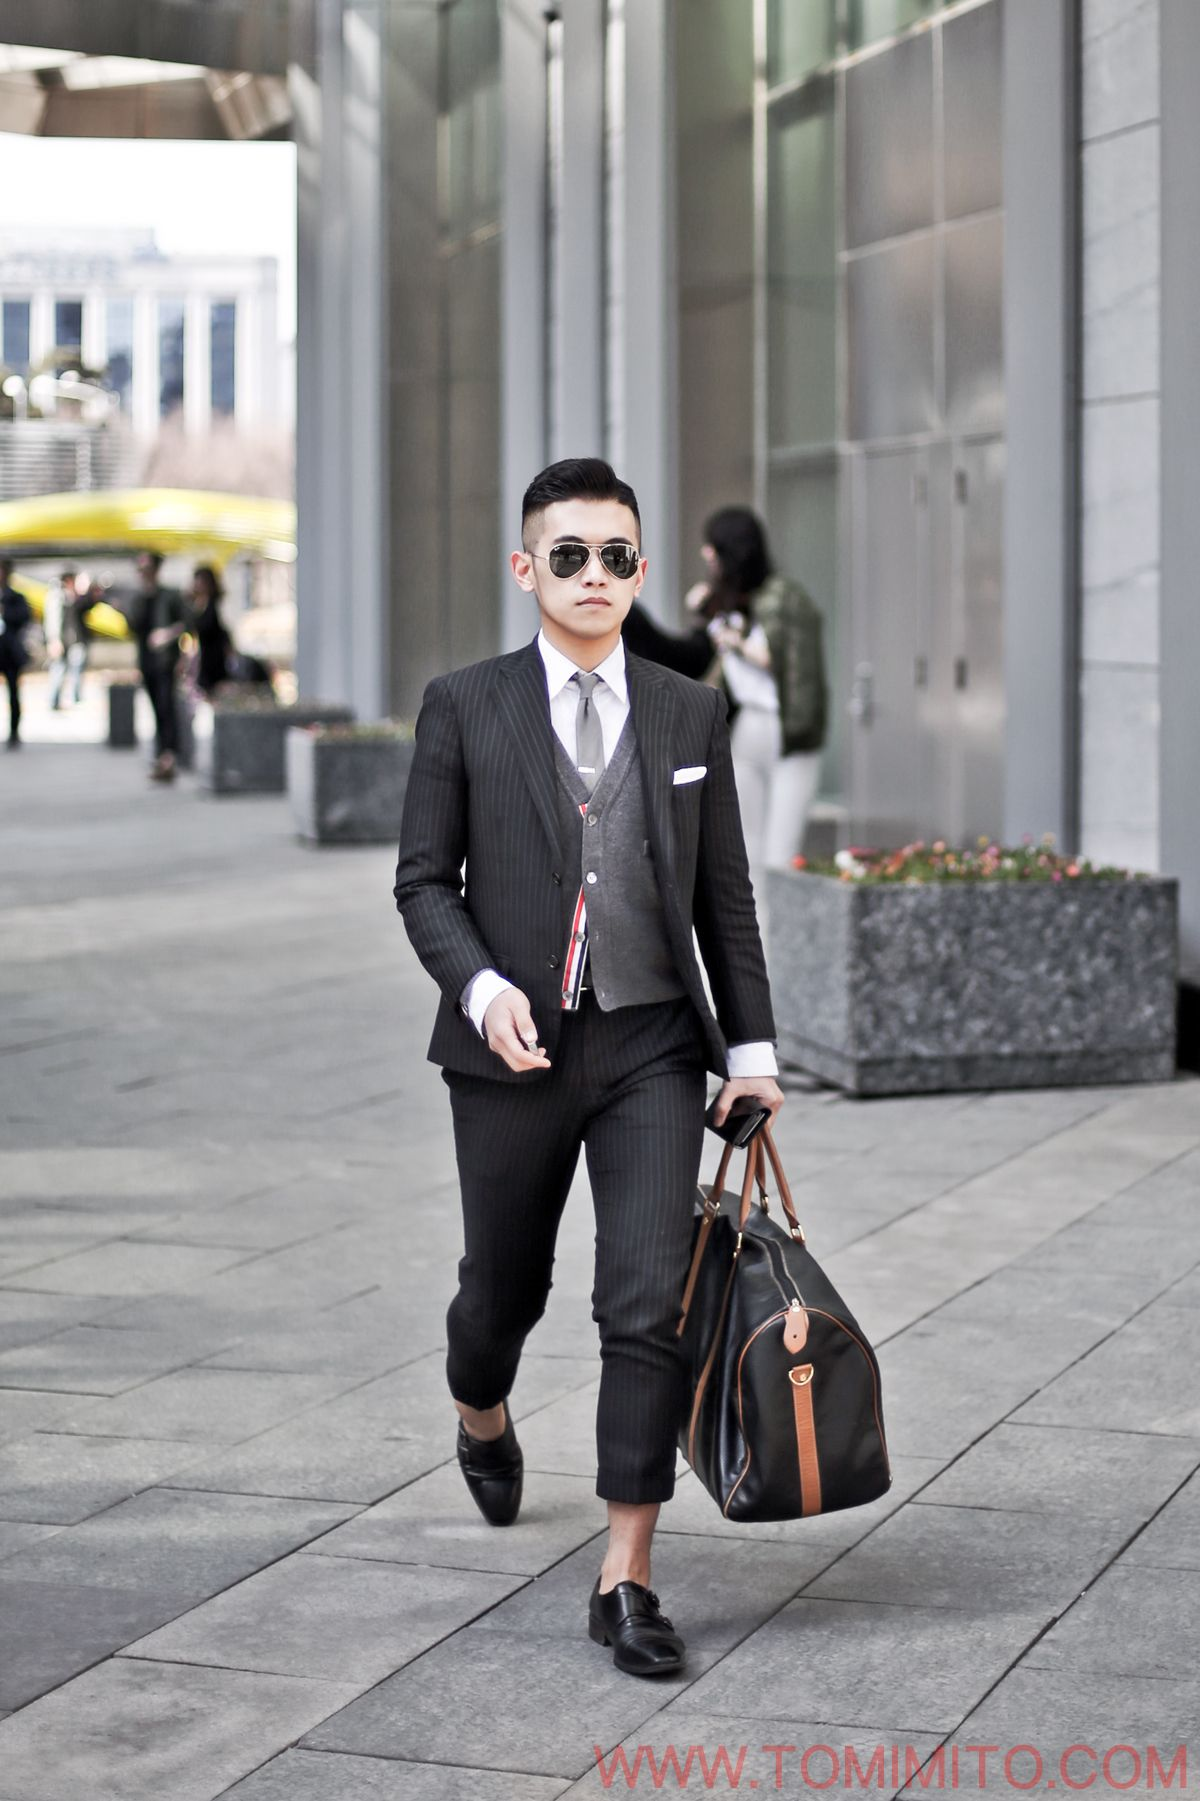 Flannel outfit ideas men  Thom Browne  Dapper  Pinterest  Thom browne and Man style